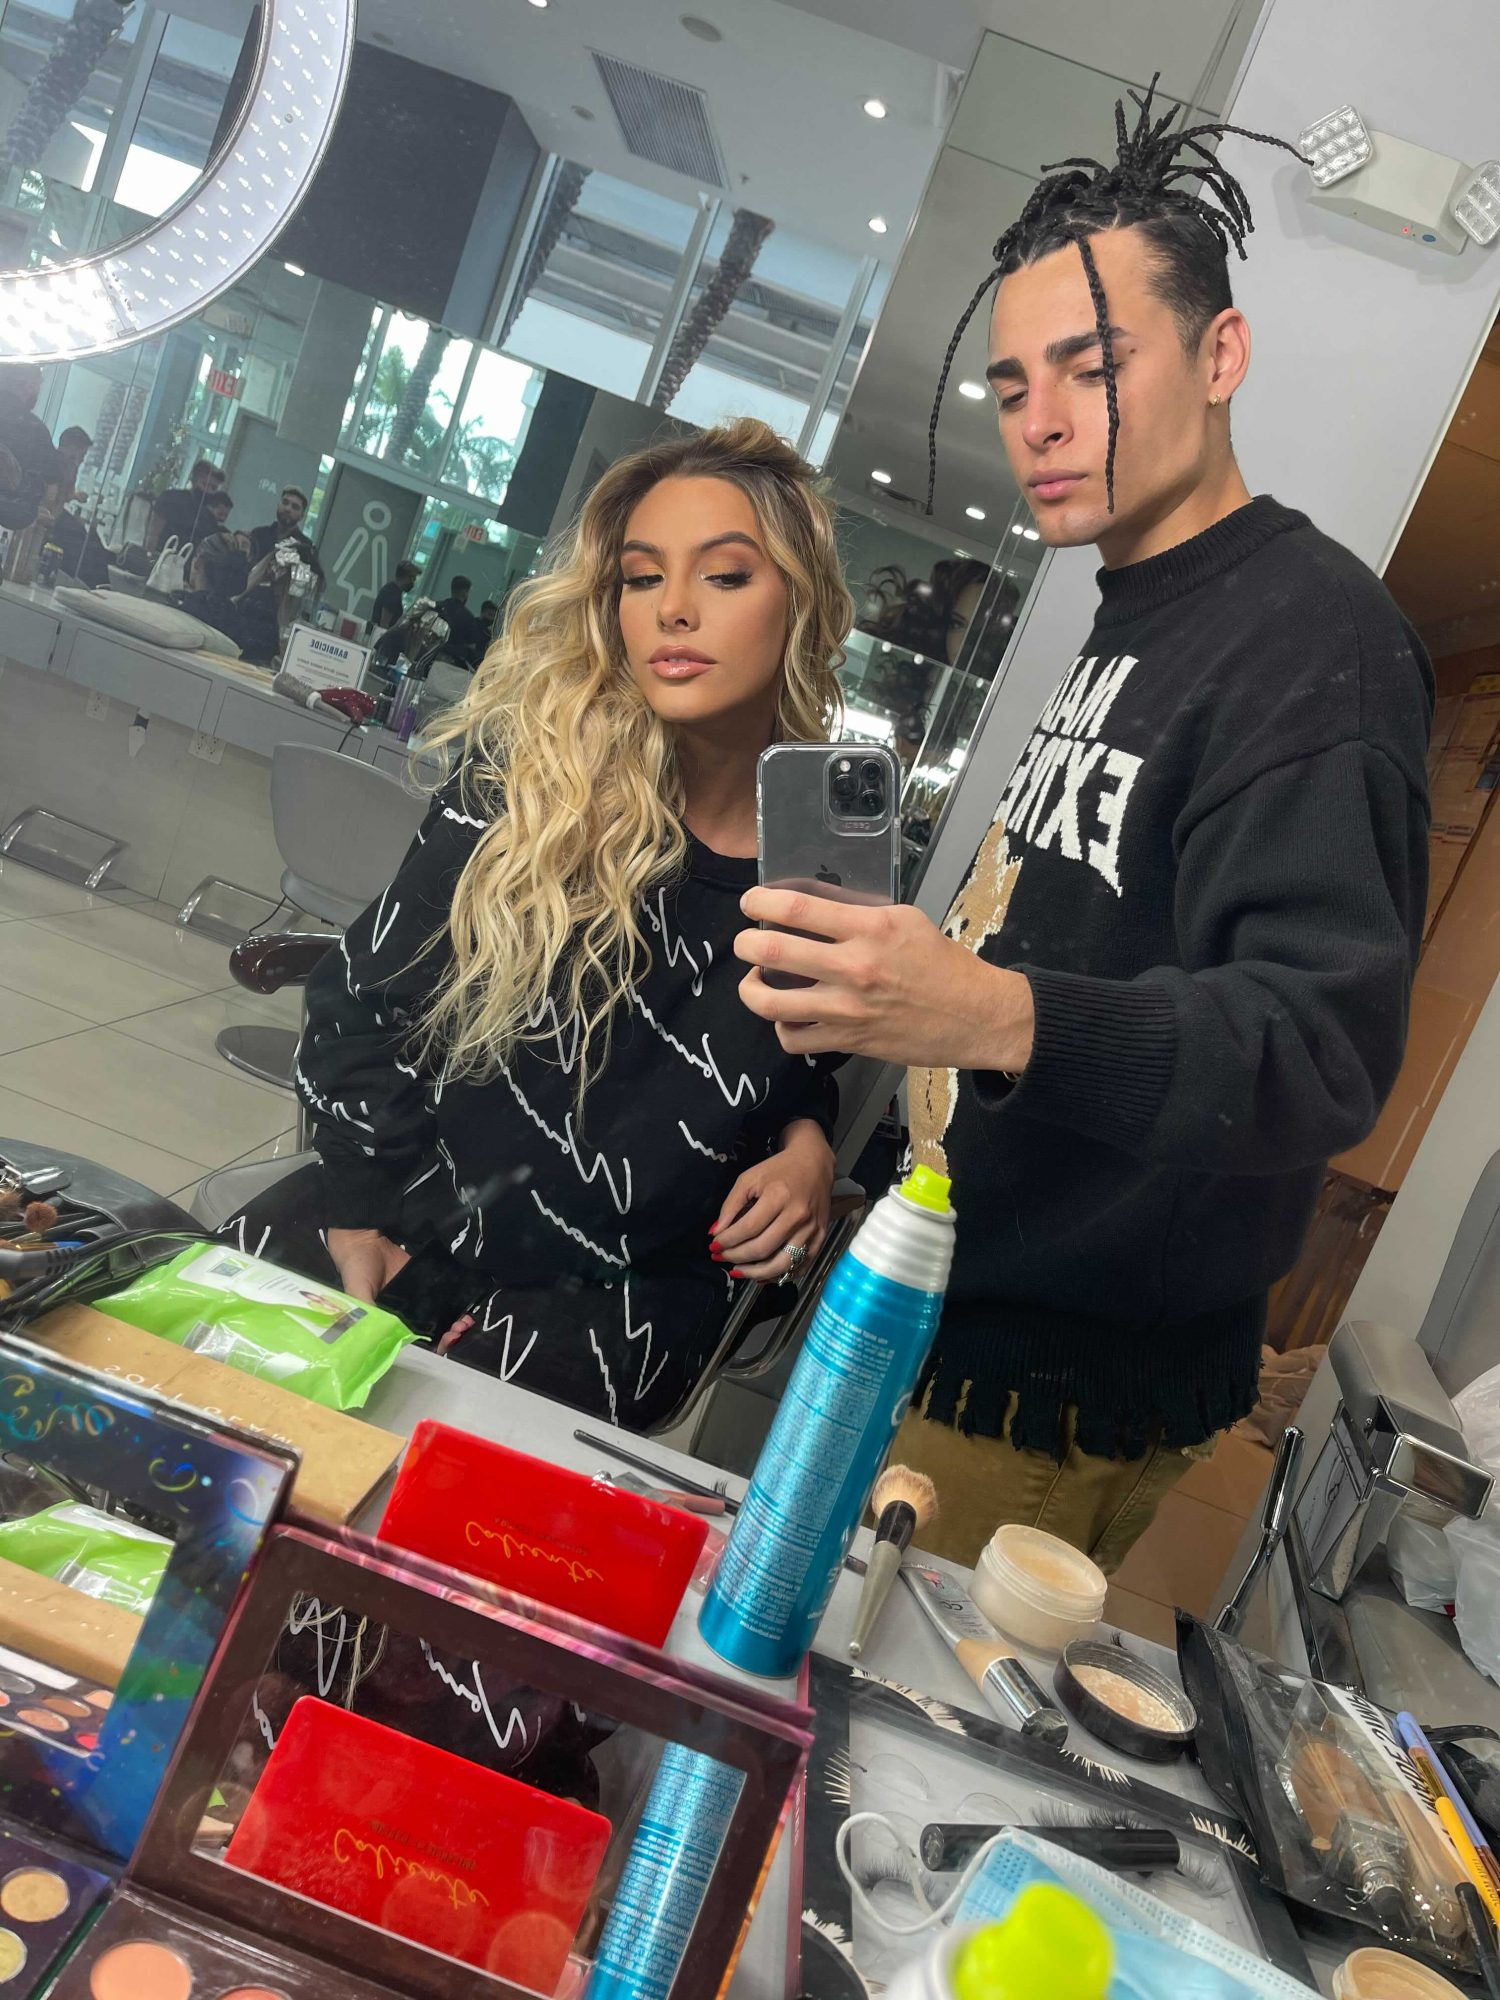 Lele Pons - Digital Cover - Hair and Makeup looks